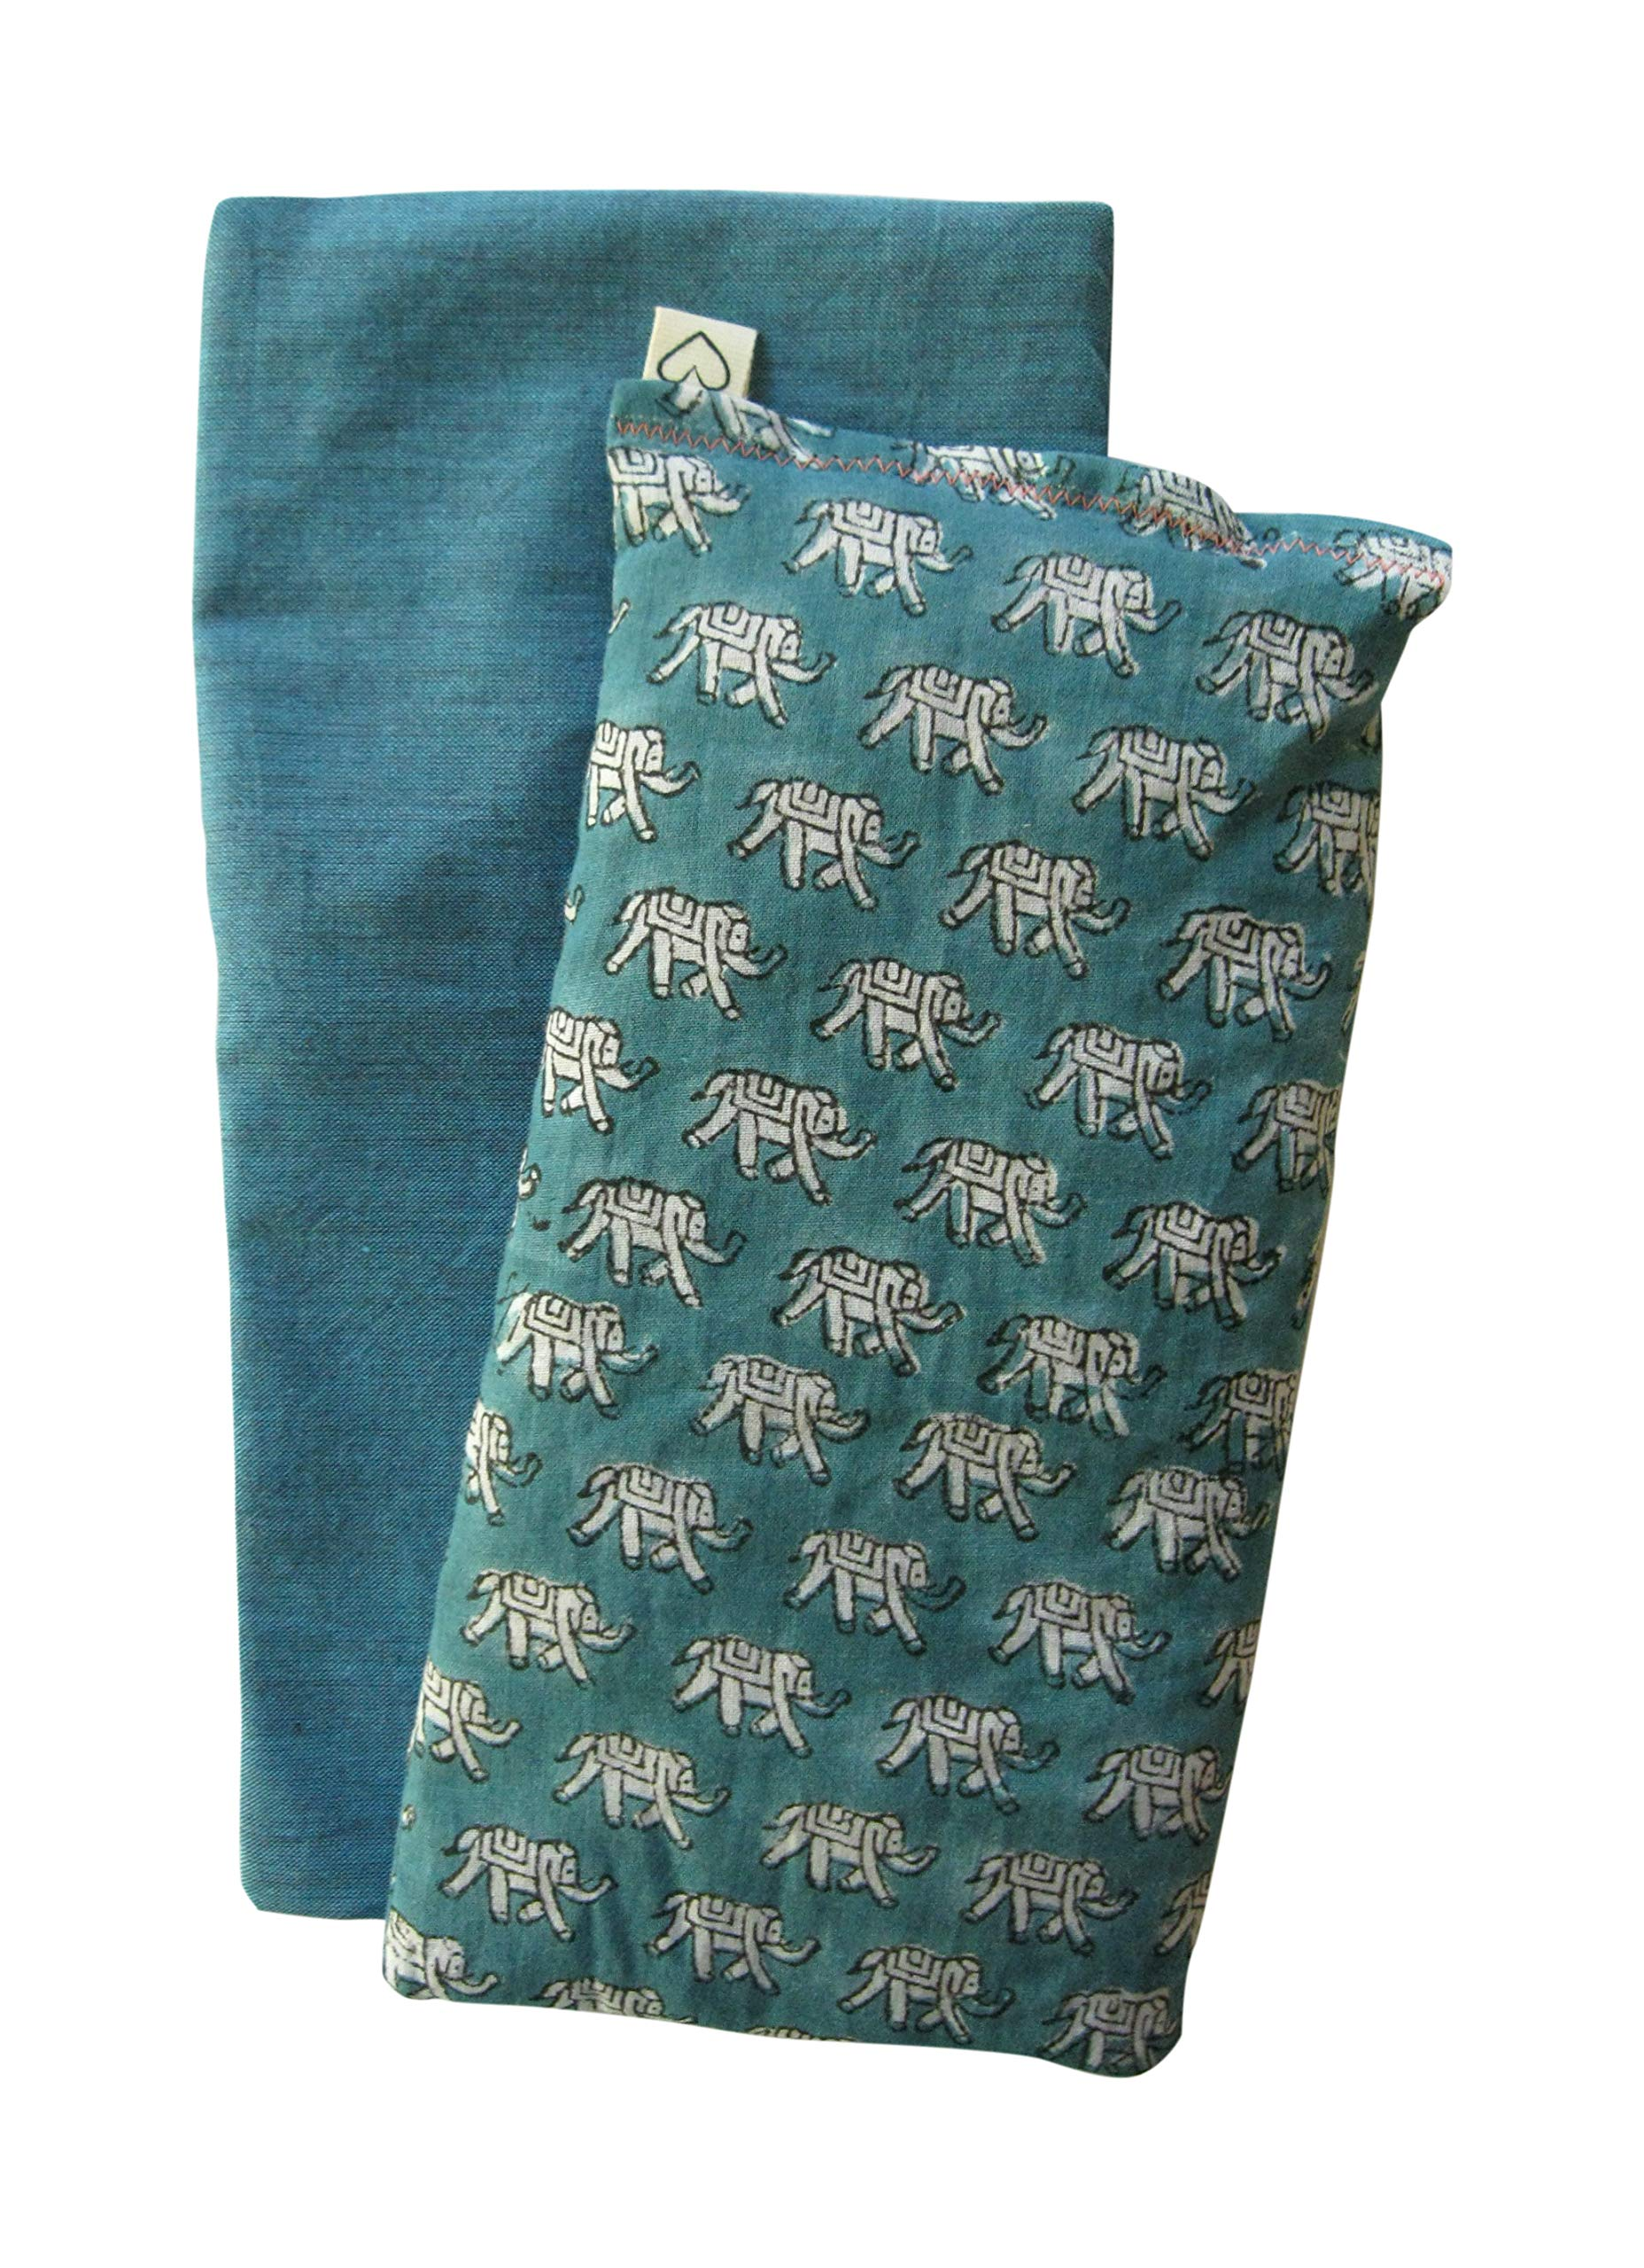 Scented Eye Pillow Gift Set - Washable Cover - Lavender Flax - 4 x 8.5 Cotton - Soothing Relaxing - elephant teal green by Peacegoods